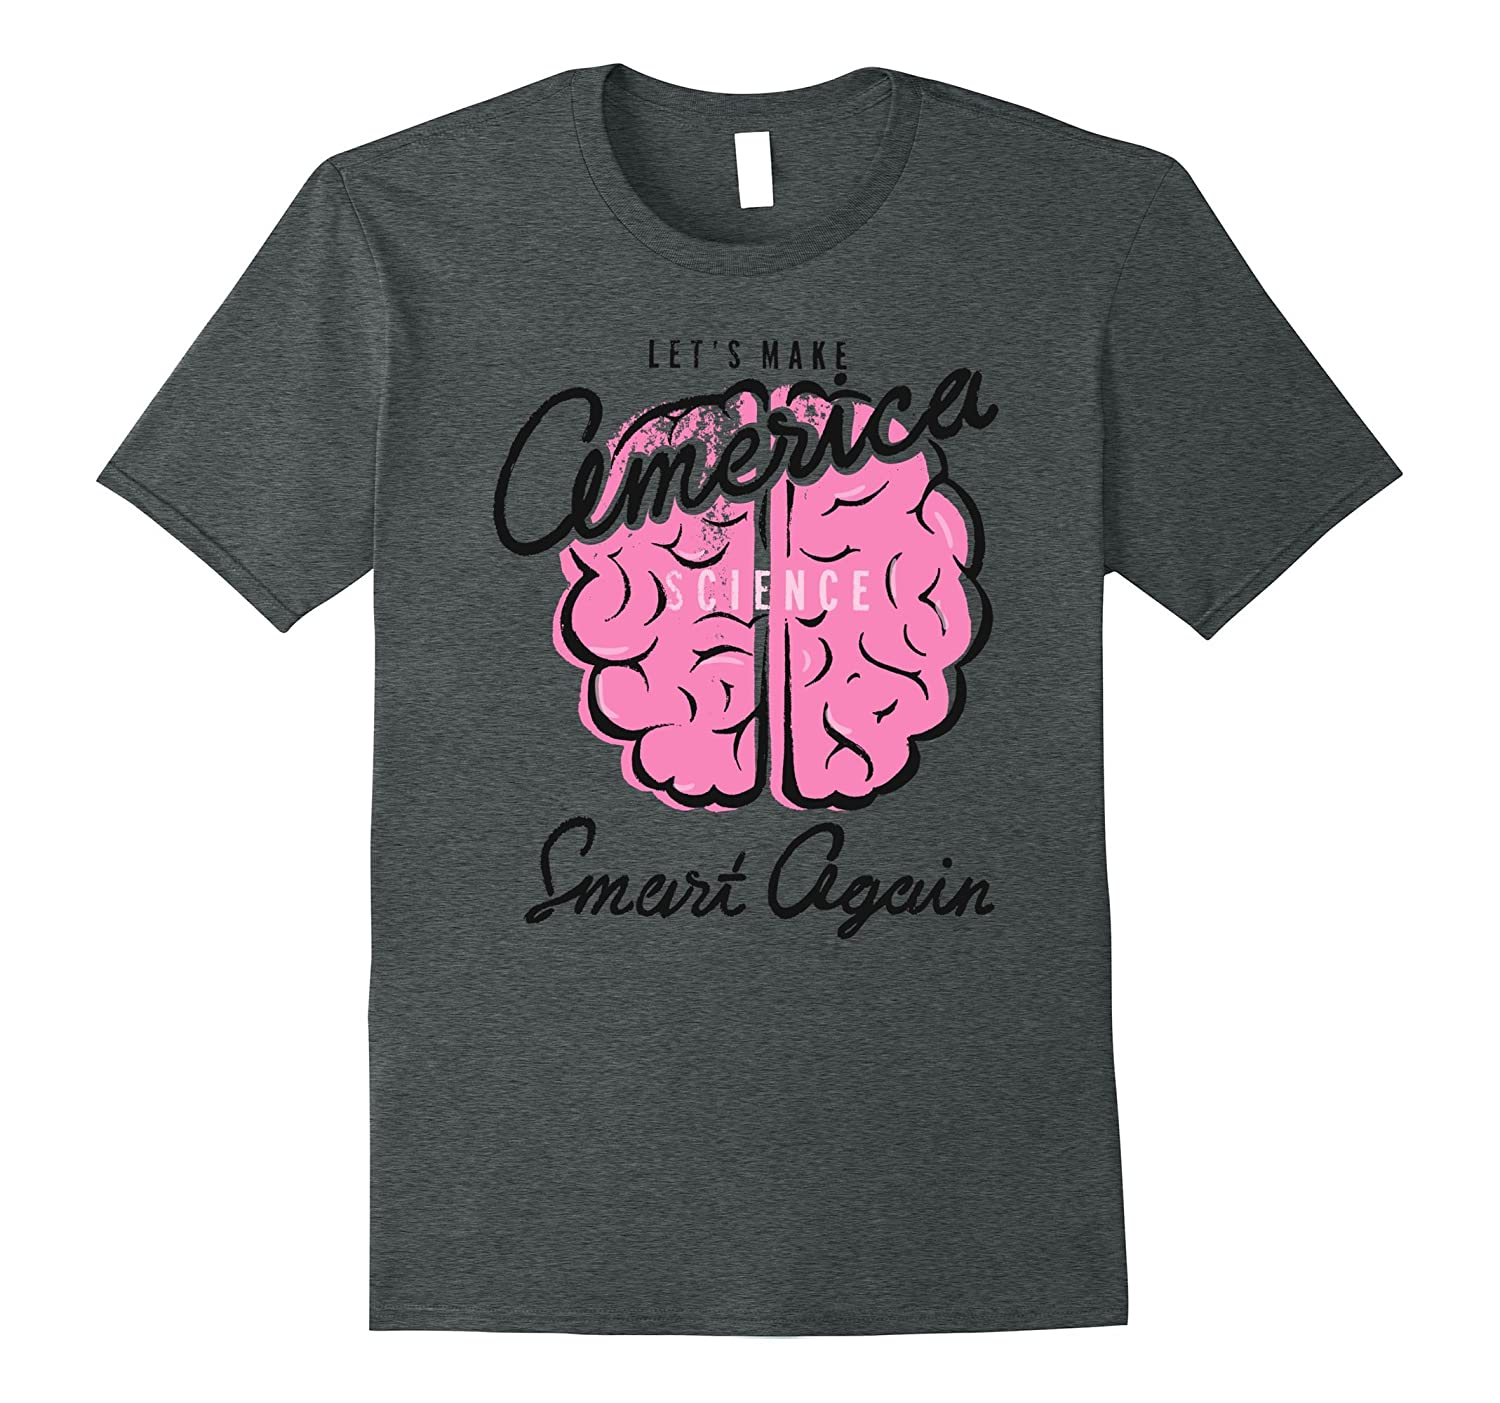 Neil deGrasse Tyson Make America Smart T-shirt-Vaci